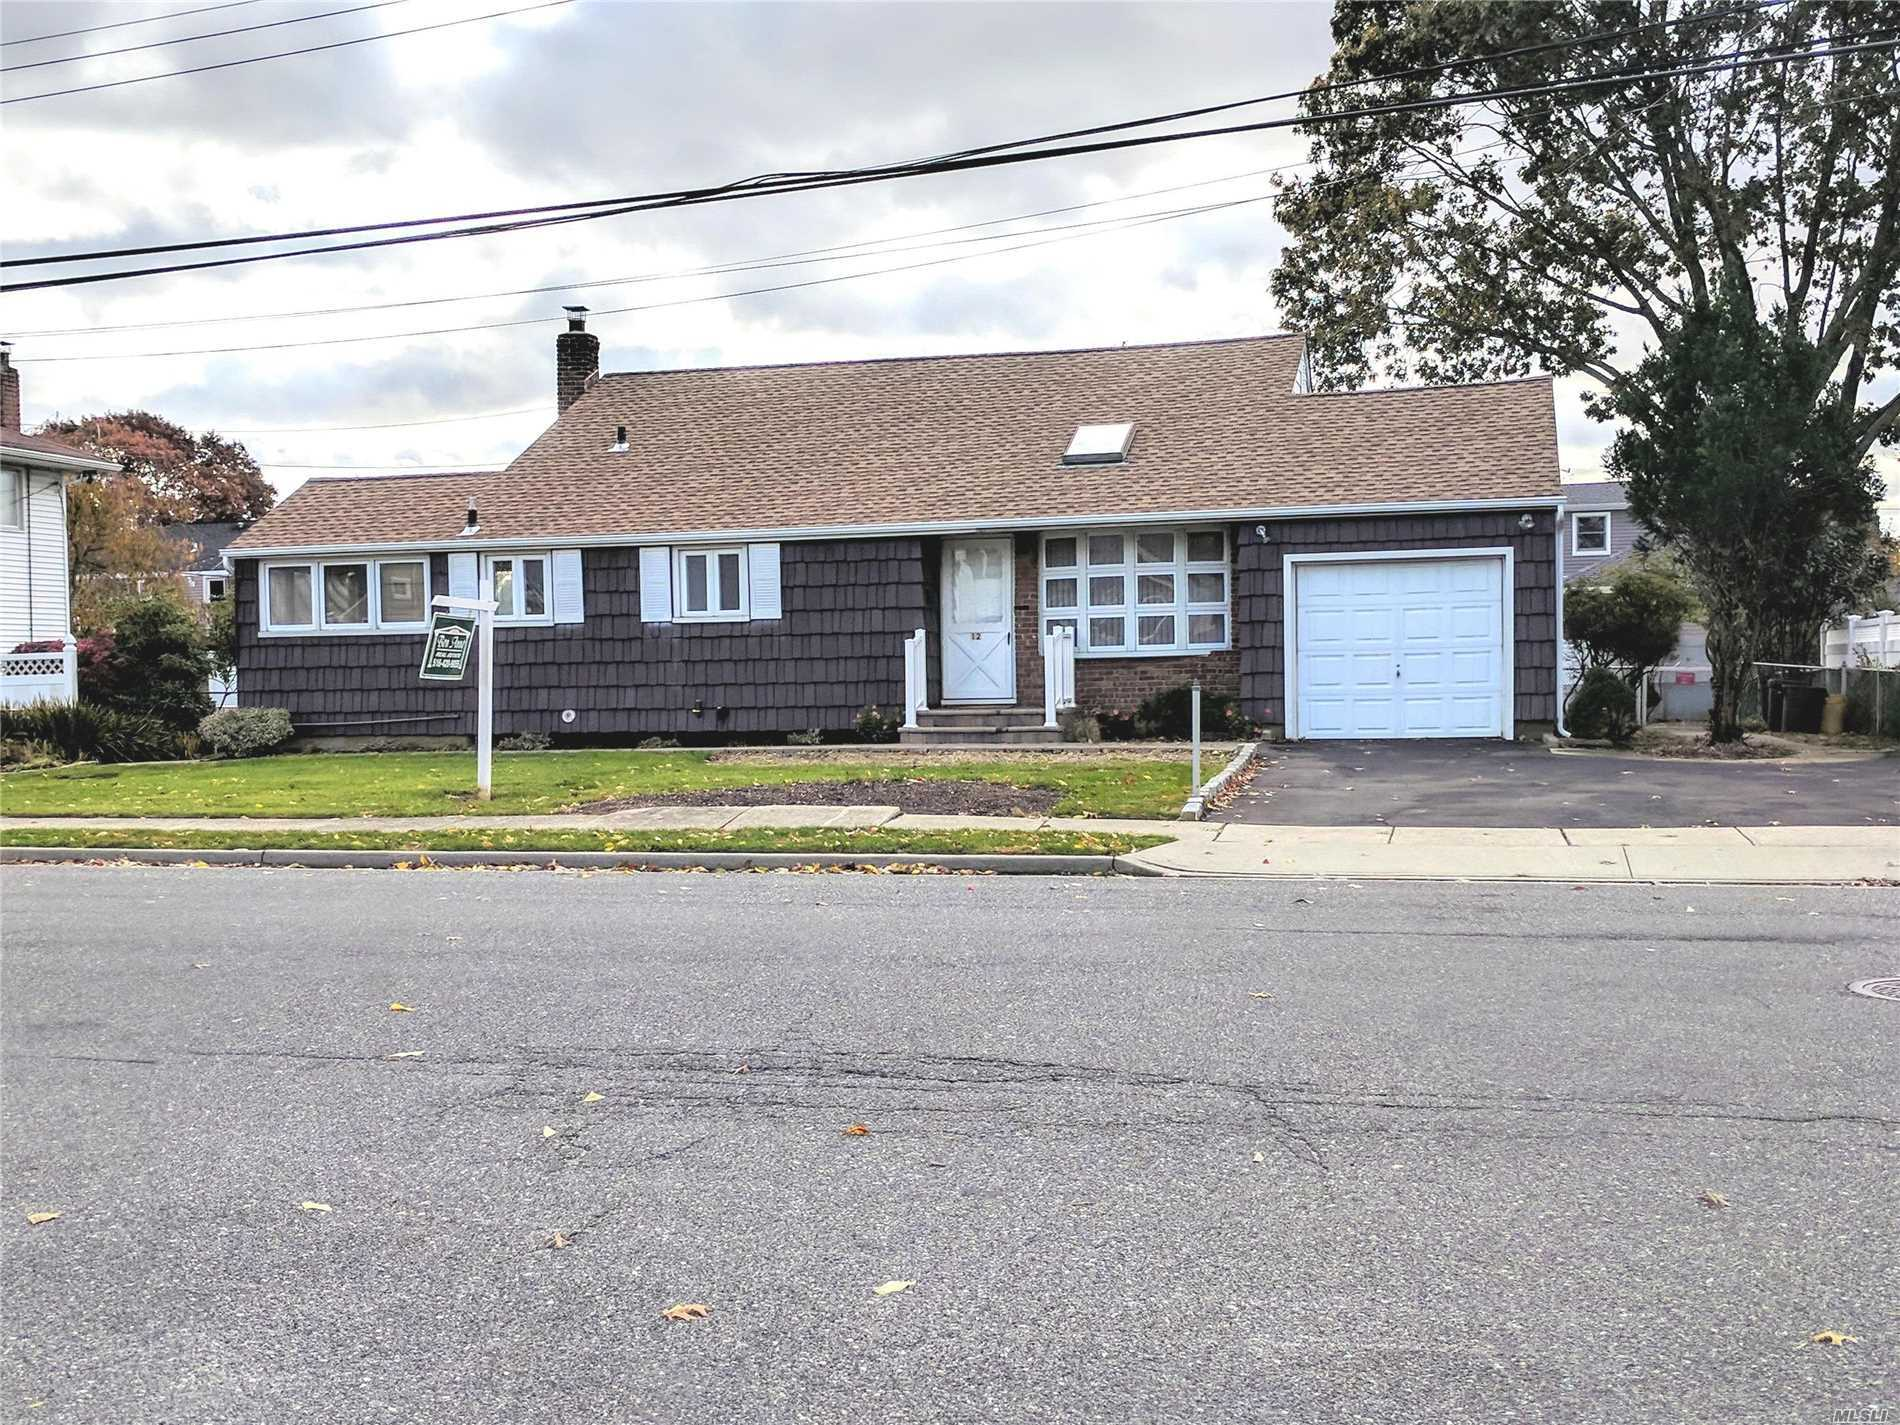 Just Listed, Mid Block Location On 80 X 100. Front To Back Split W/Ext Updated Eat In Kitchen. New Roof, Paver Walkway And Stoop, 6 Zone Igs And Acs. Fenced. Near Woodward Pkwy Elementary. Taxes After Star $7, 771. Flex Occupancy. Lots Of Interior Storage, Att Garage & Shed. Spacious Lr W/Cath Ceiling & Skylt. Dbl Wide Driveway And Plenty Of On Street Parking. Carpets Removed On Main Level, 2 Brs & Hallway To Show Hardwood Floors. Backyard Being Further Cleared Out This Week. New Pix To Follow.